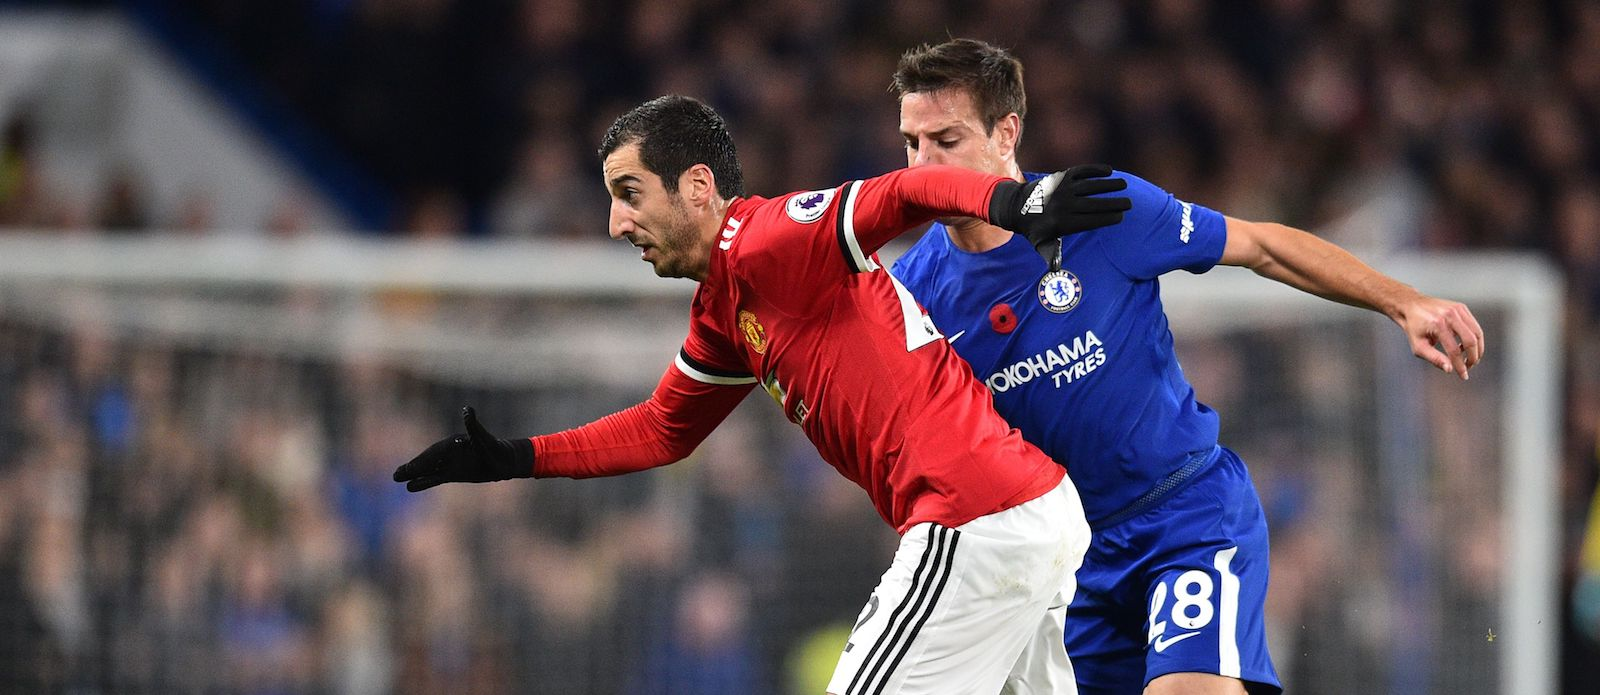 Henrikh Mkhitaryan receives important confidence boost on international duty